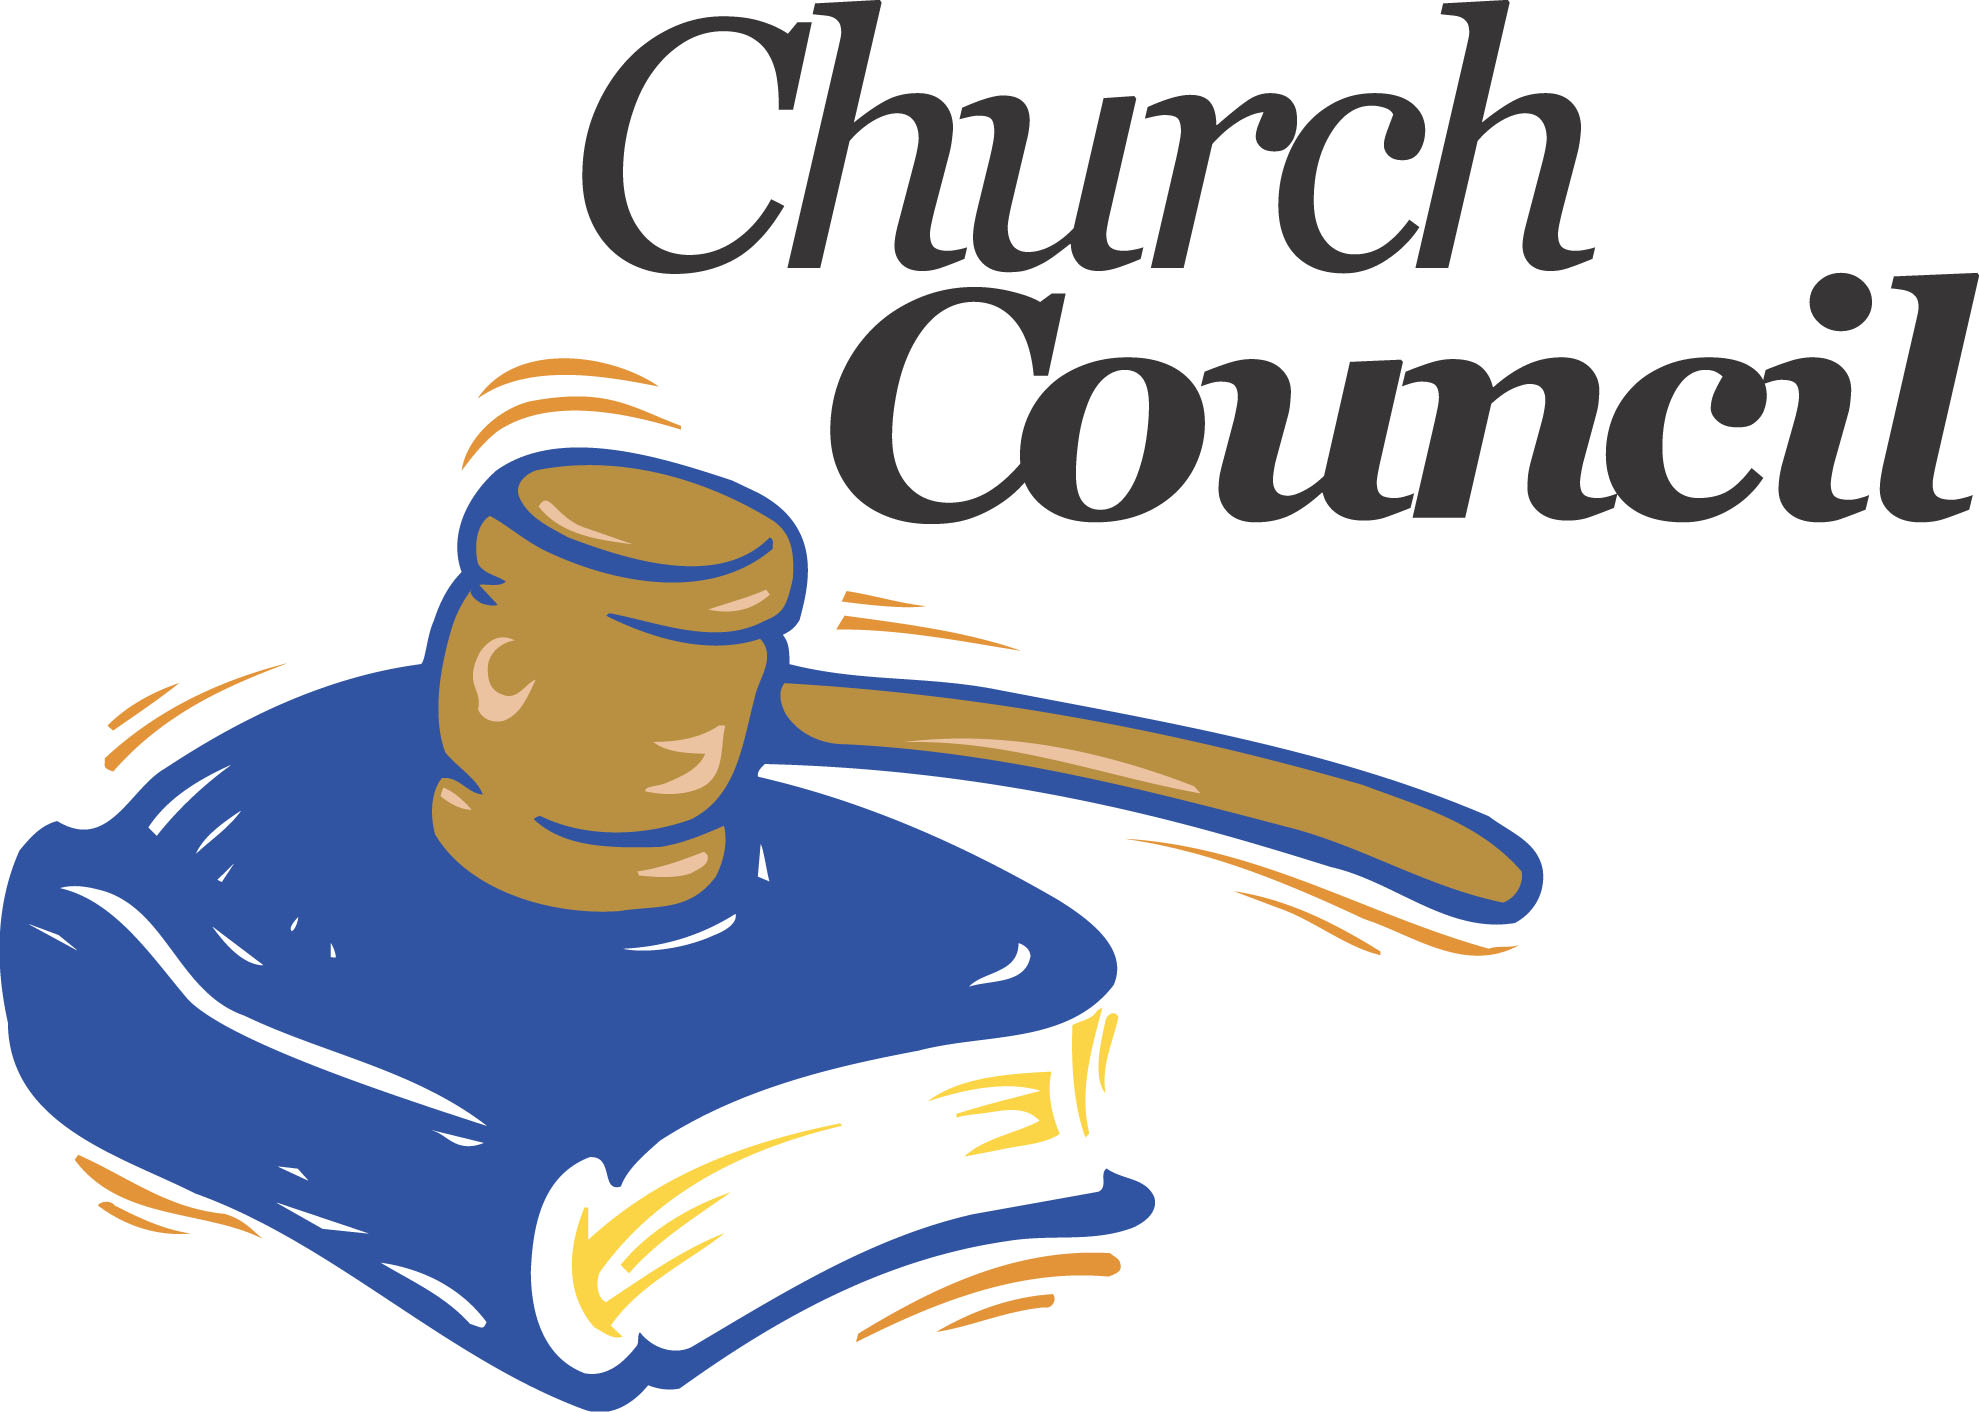 Church Council Clipart.